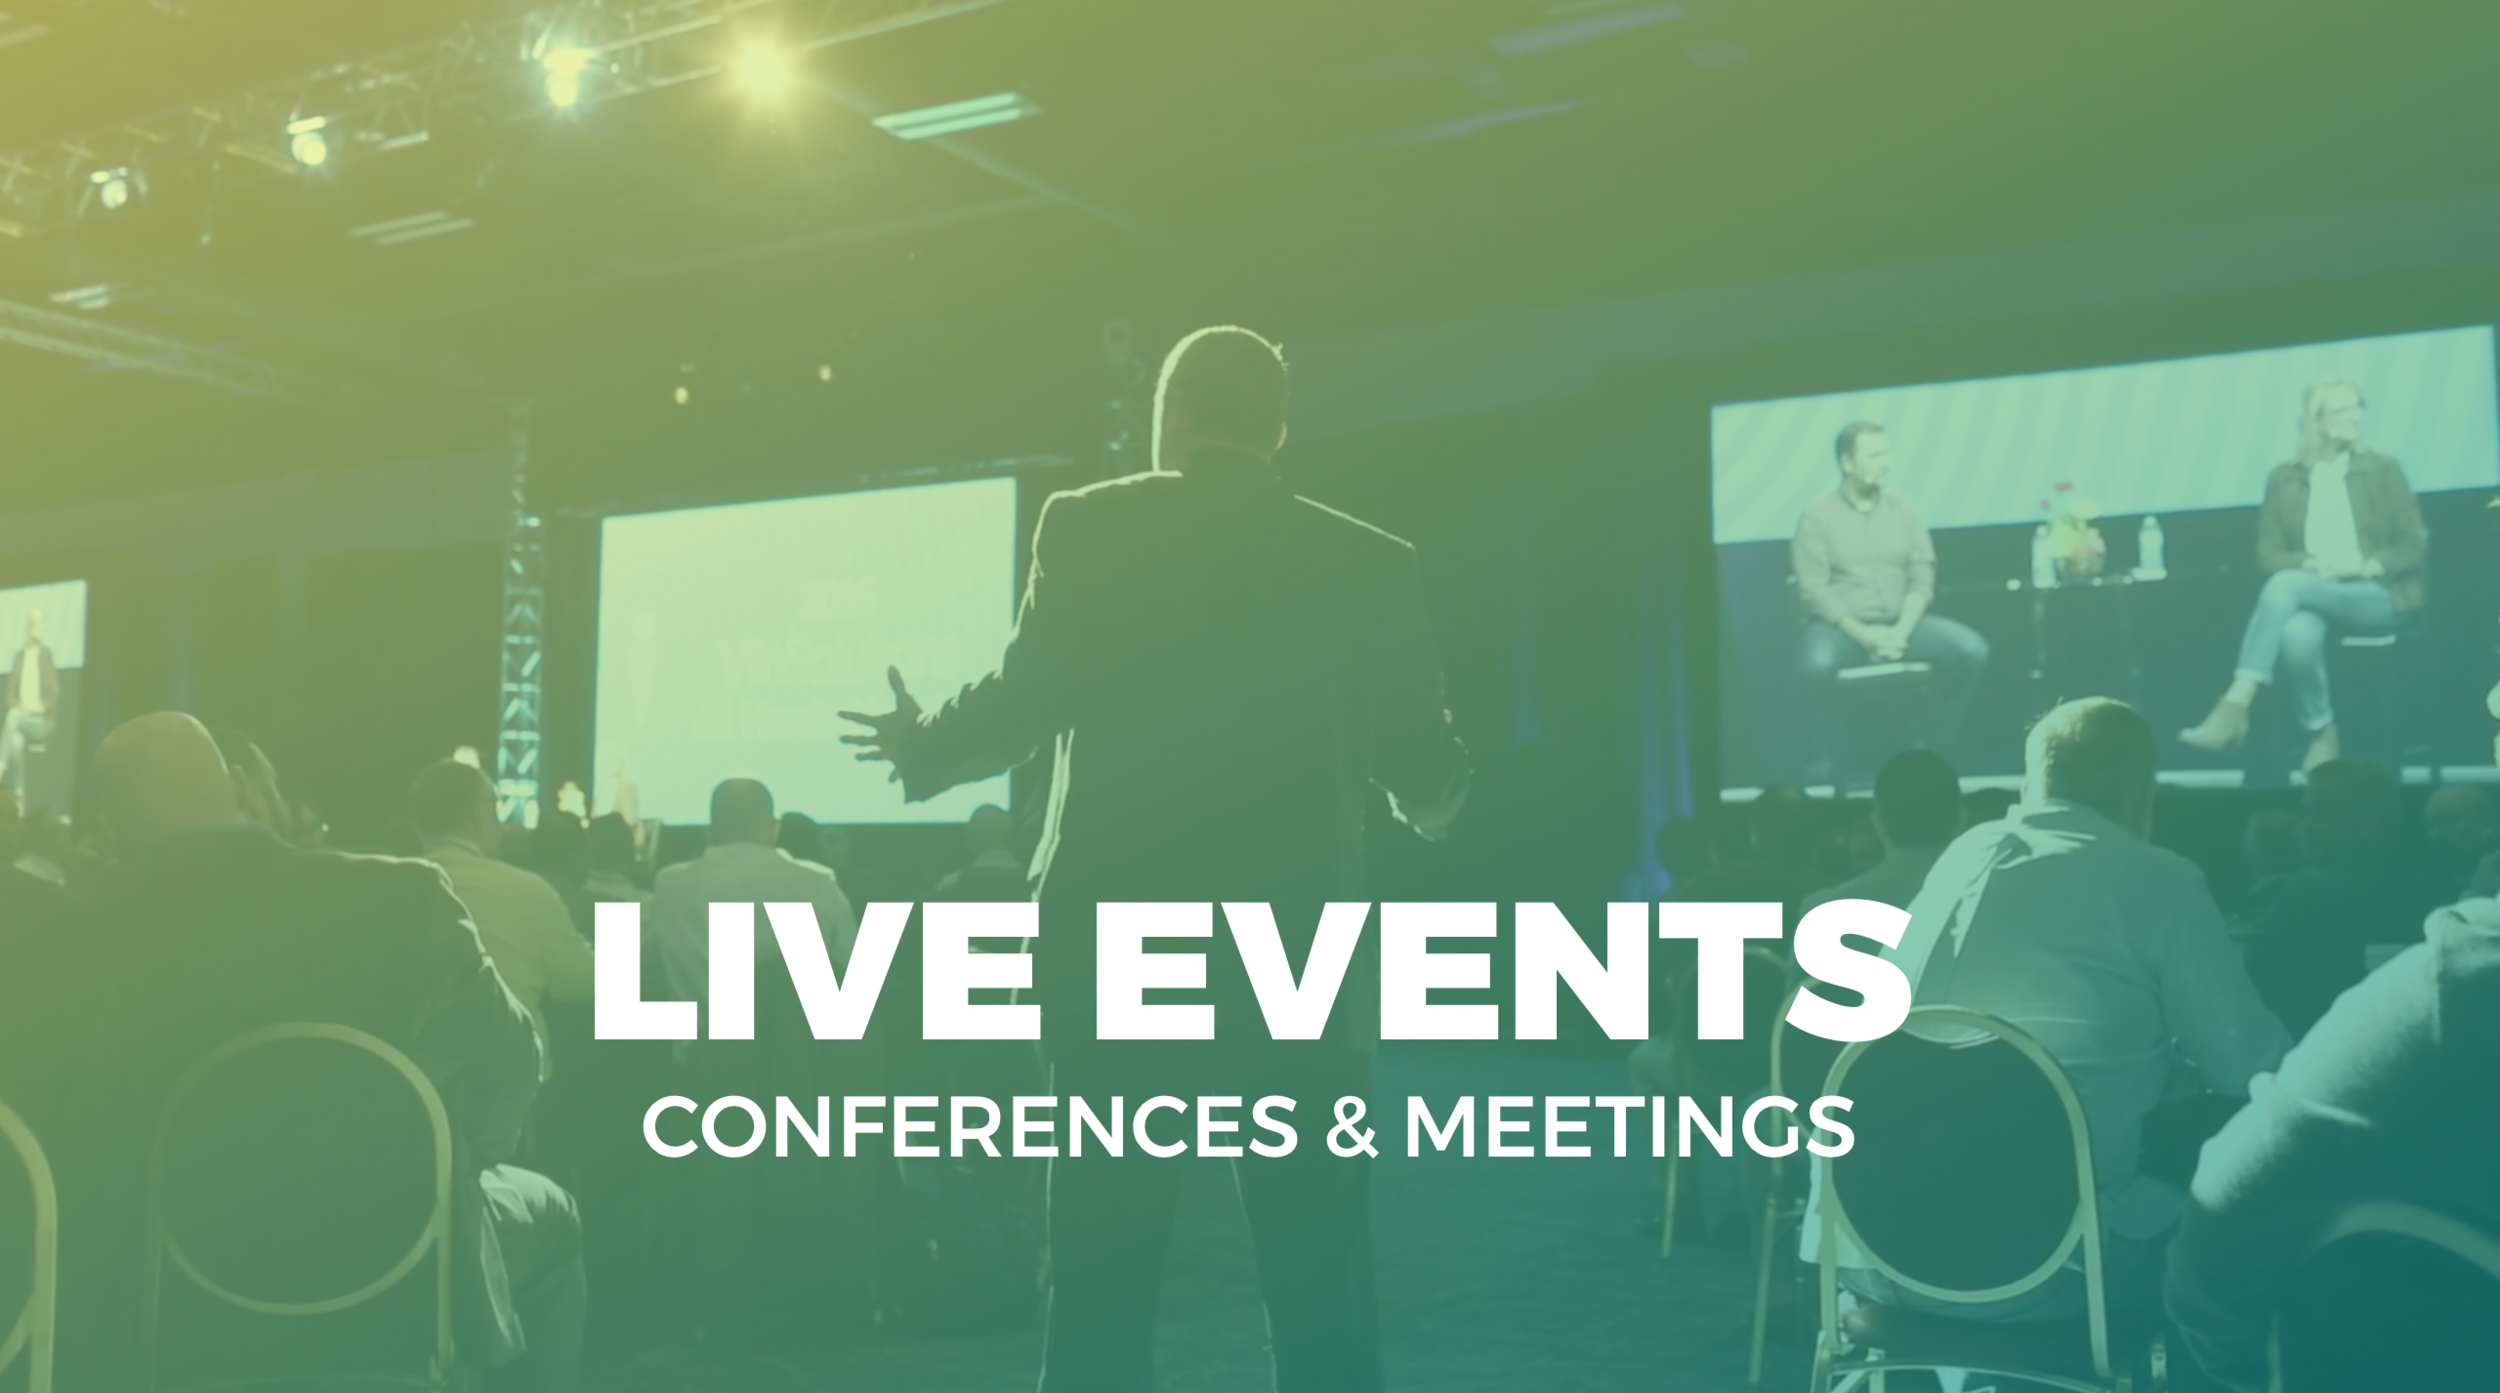 When your an industry leader, people listen. It's your role to be influential and connect. Event services through Enrichly can fully engage your audience like it did for VinSolutions.